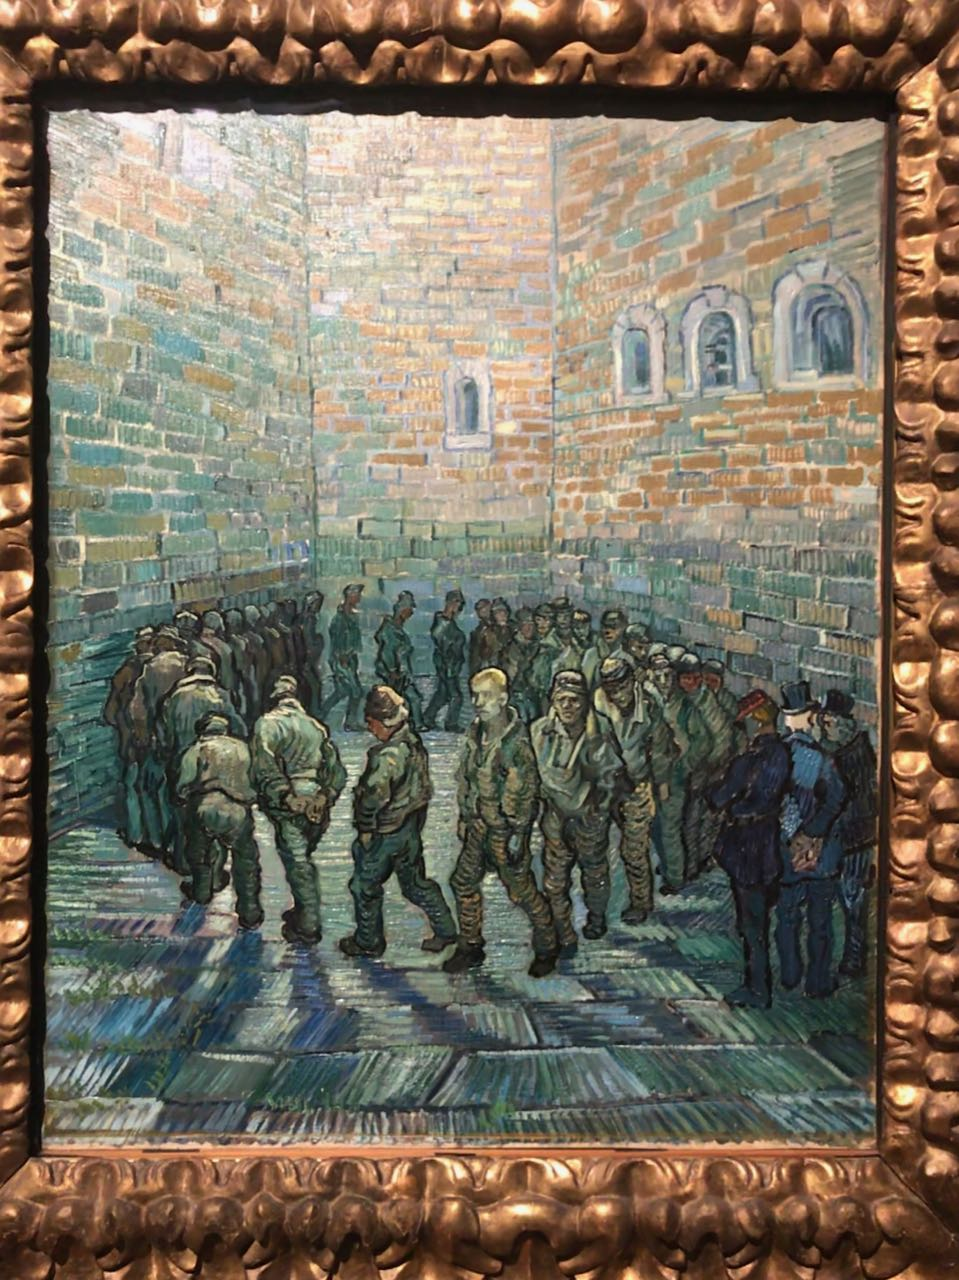 Prisoners exercising by Gustav Dore/ Van Gogh. Photo taken by Gopi Chandroth.